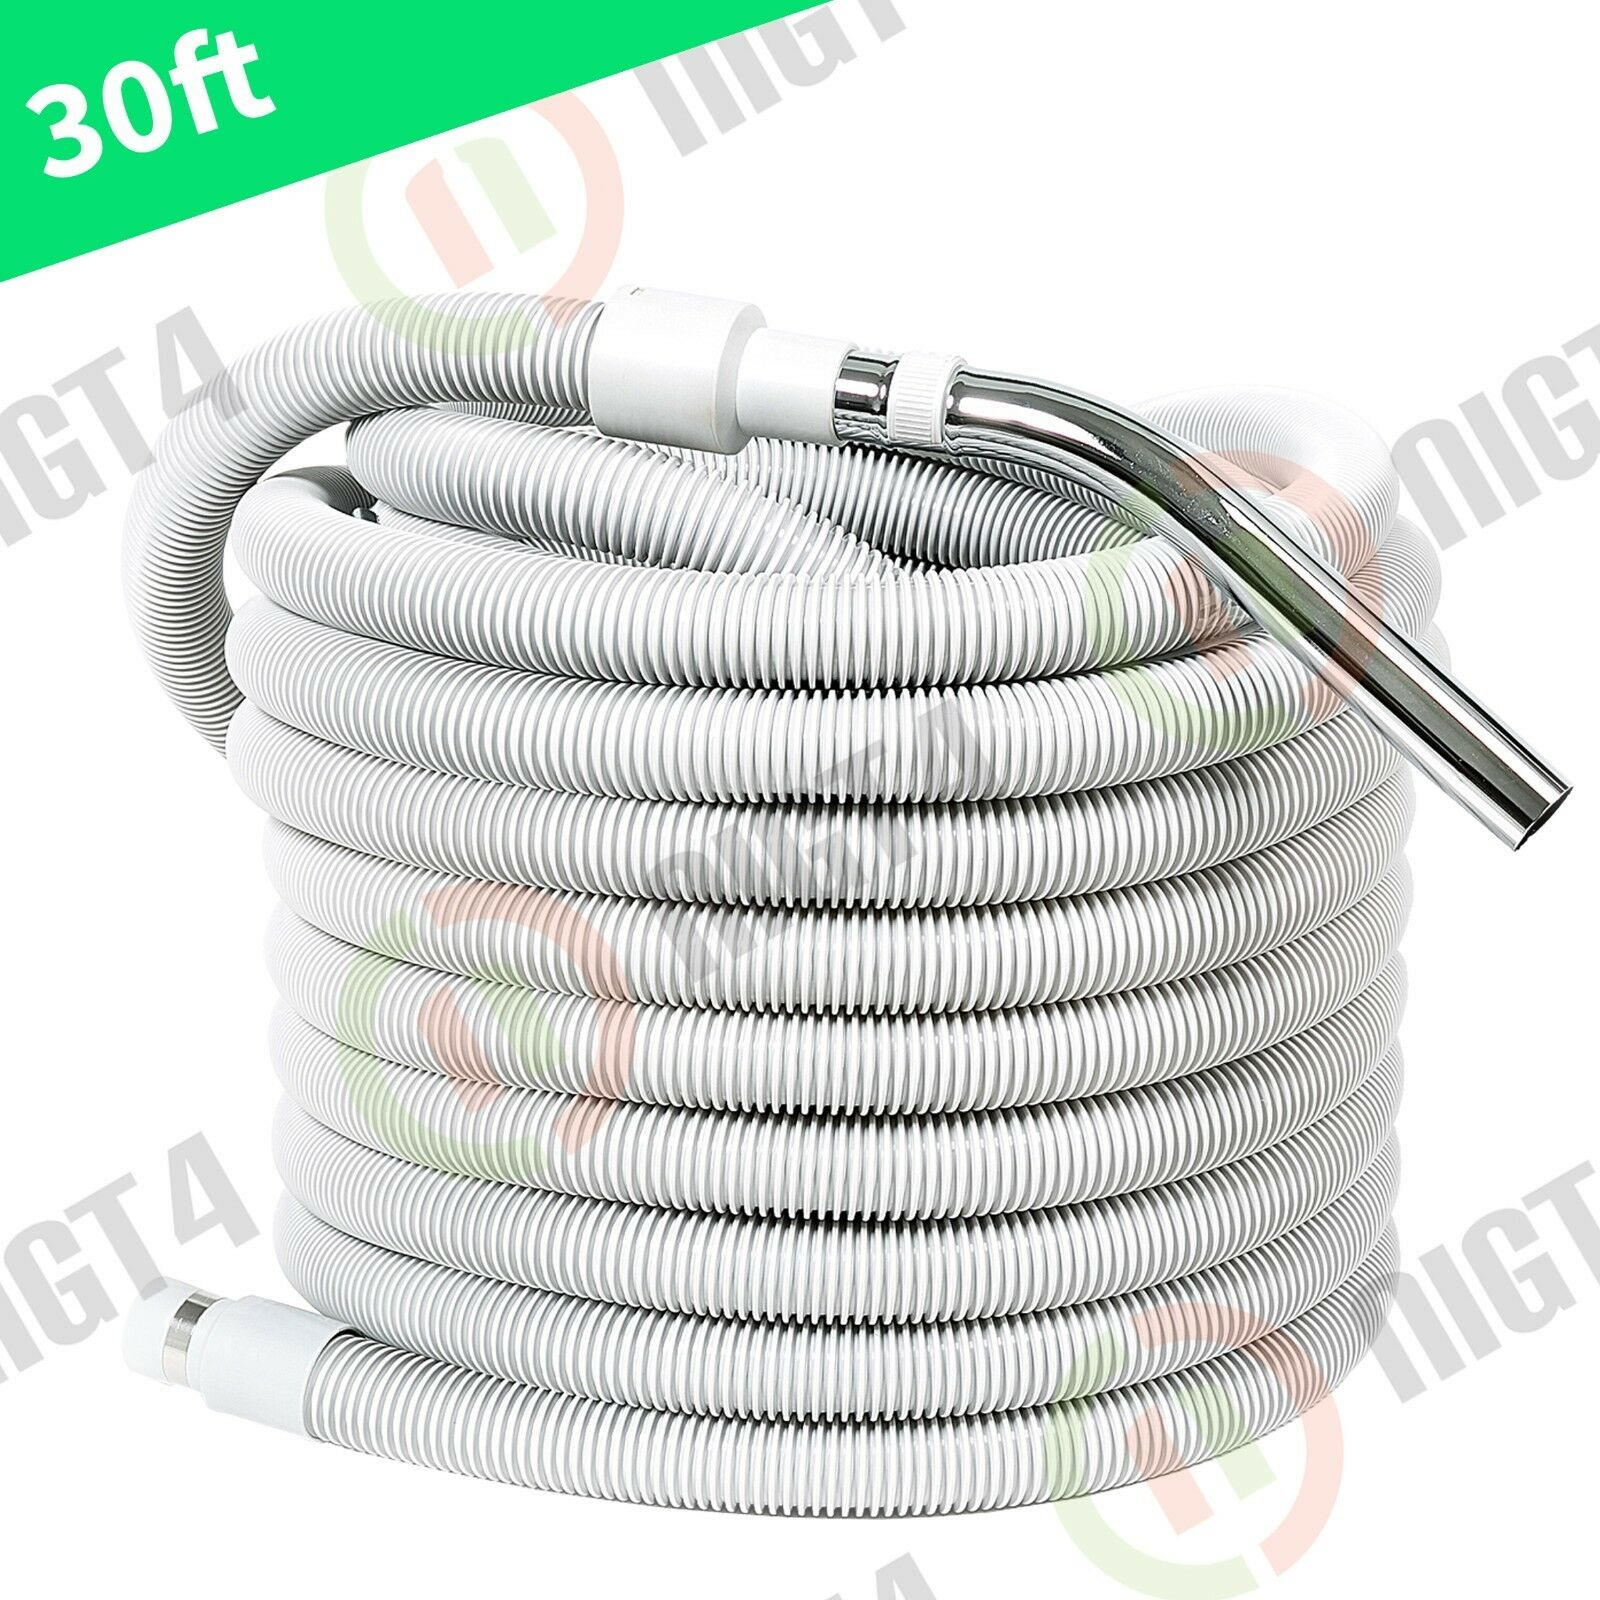 FREE SHIPPING Aspirateur Central Vac Vacuum 30' Hose Crush-Proof Non-Electric